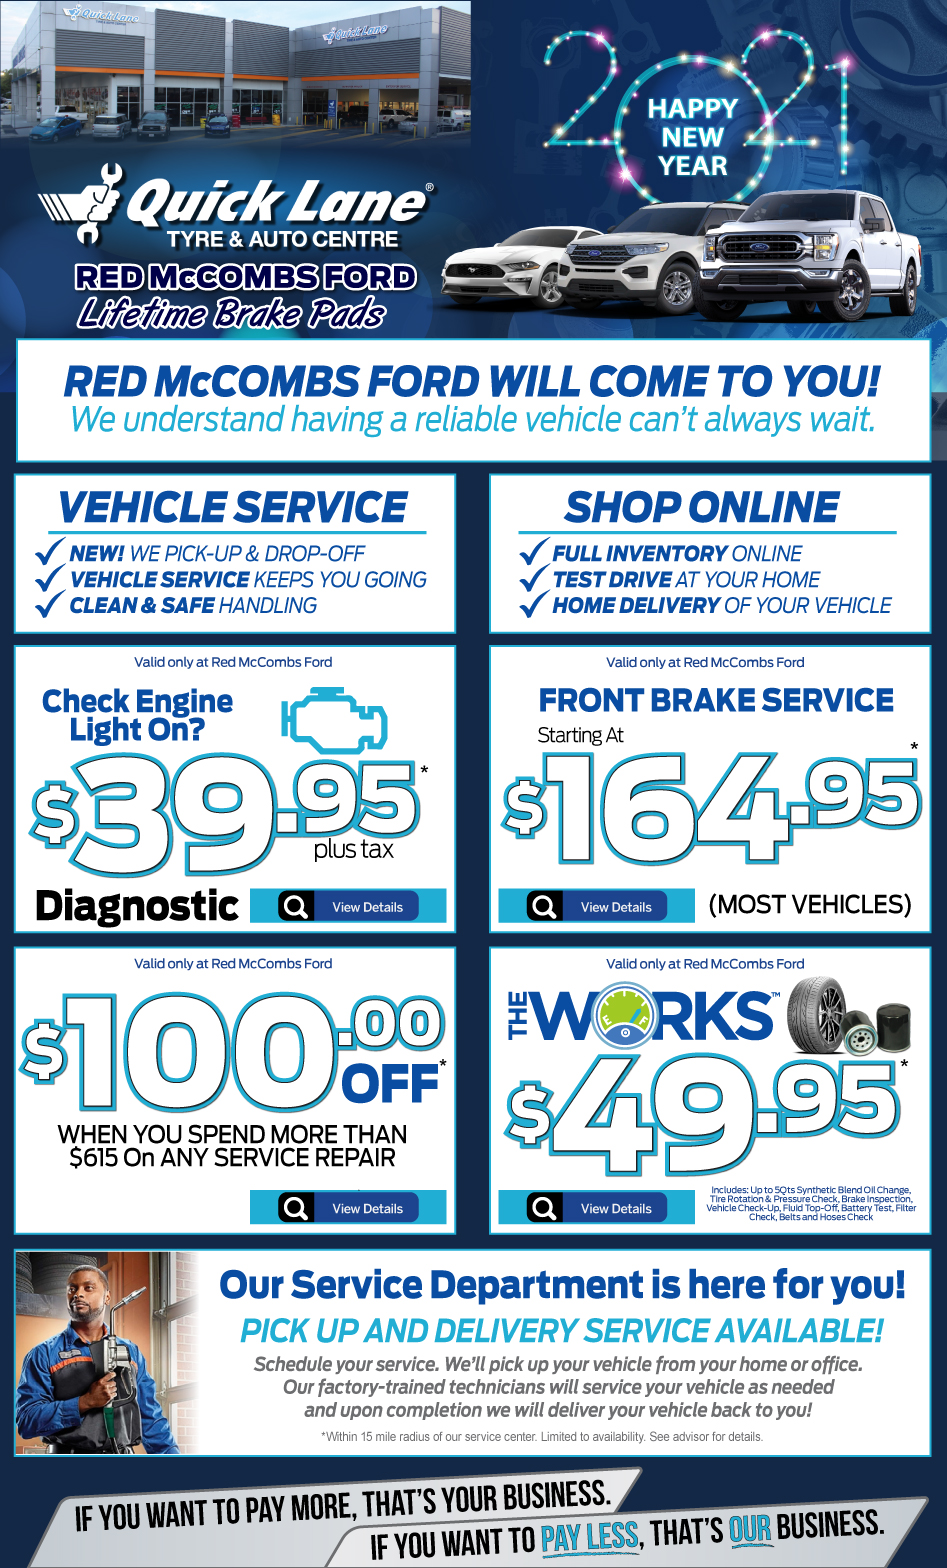 Visit Red McCombs Toyota to explore our wide range of new and used Toyota cars, trucks, vans and SUVs. Schedule Toyota service in San Antonio, TX, or speak with the Toyota finance team at Red McCombs for expert assistance!